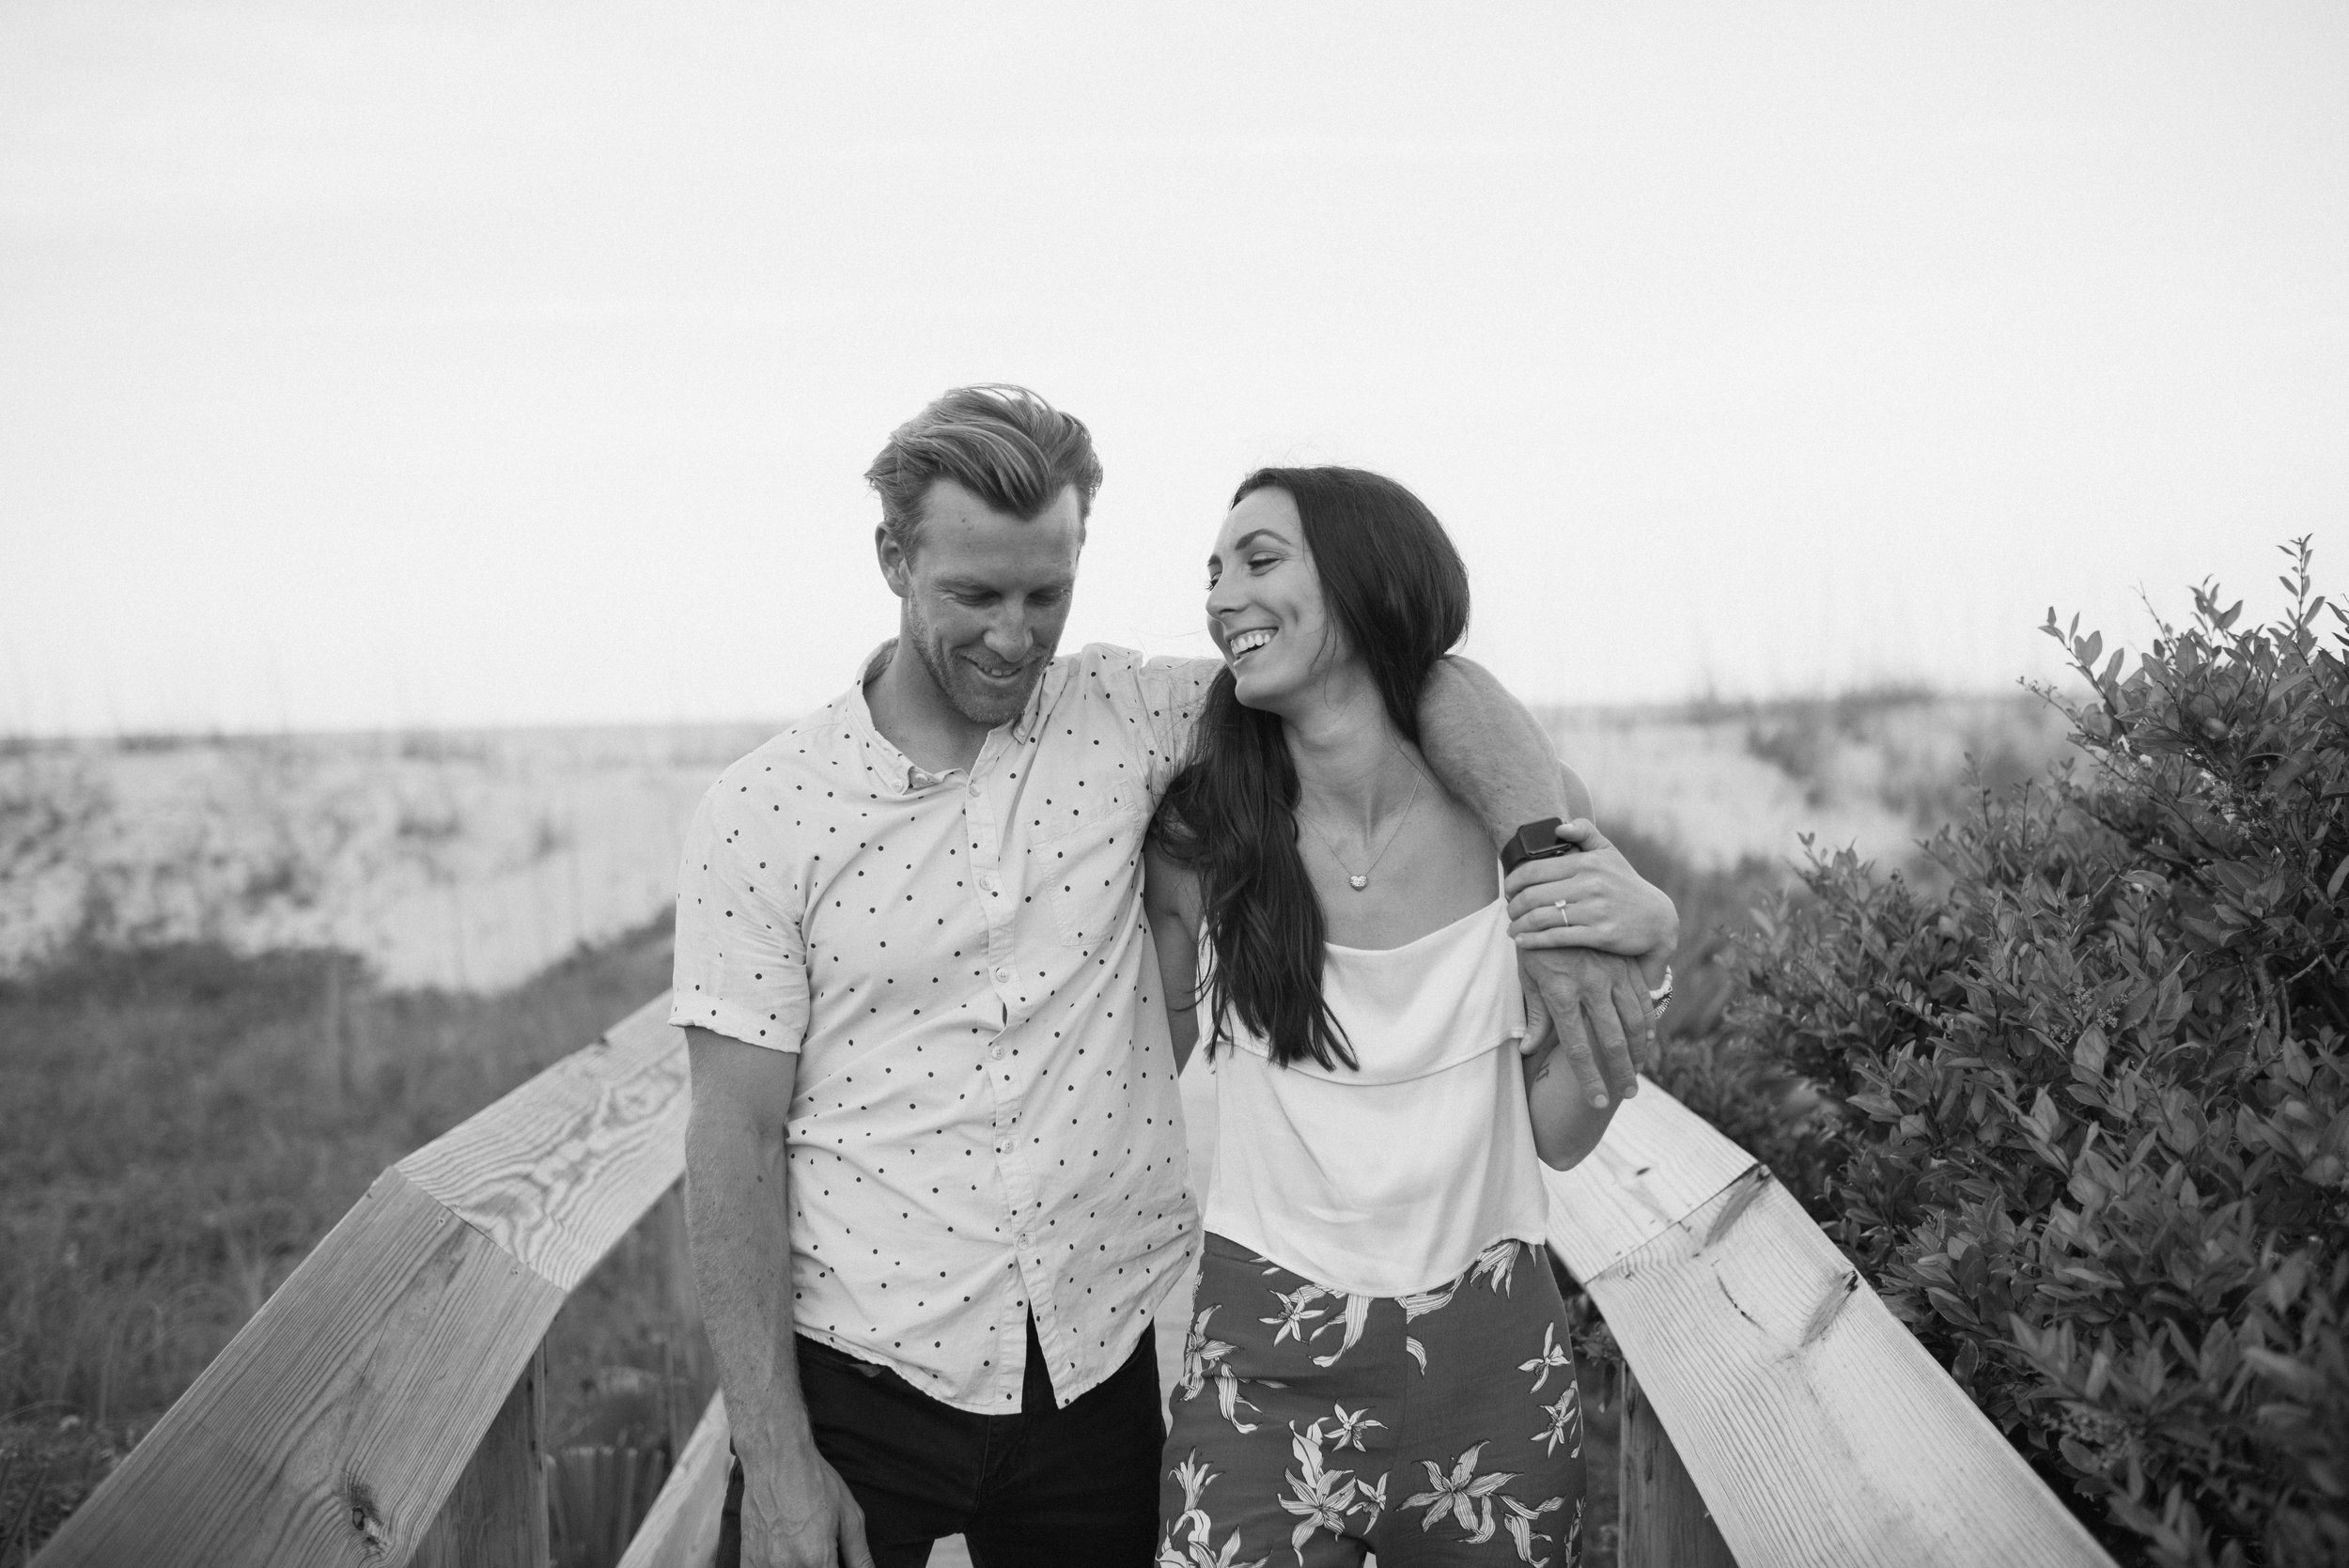 atlantic-beach-engagement-photos-heather-and-cody-98.jpg